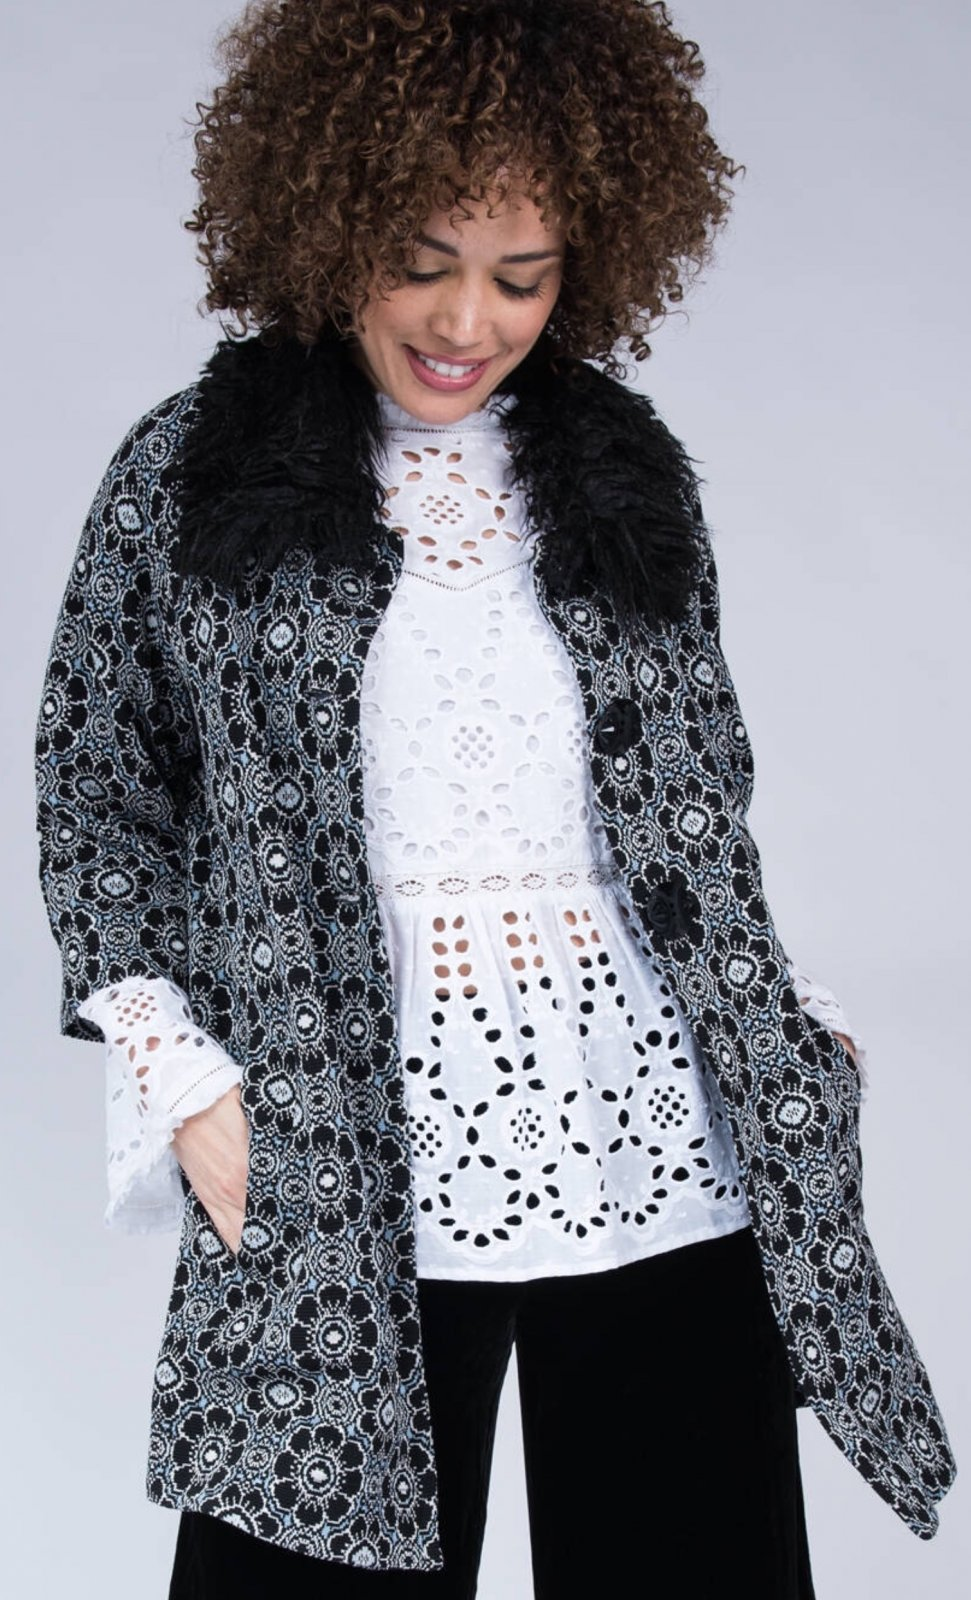 Swing Coat with Fur Collar from Ivy Jane